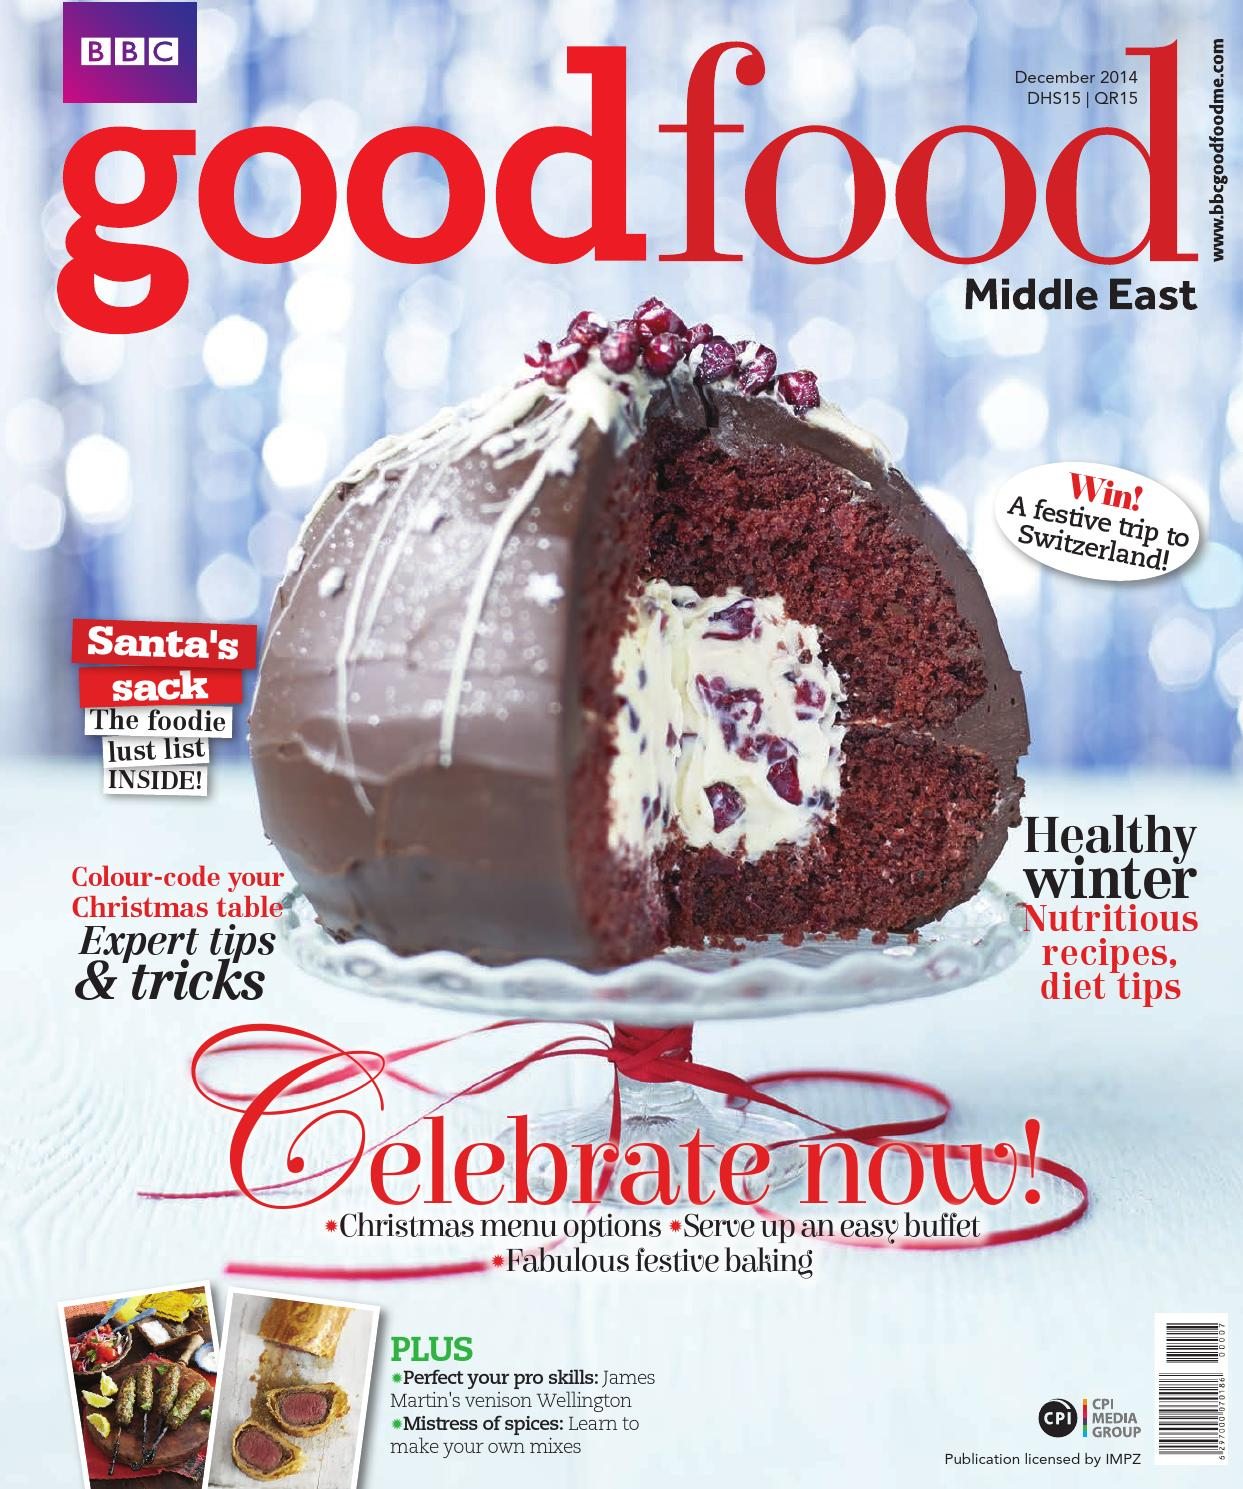 Bbc good food me 2014 december by bbc good food me issuu forumfinder Gallery